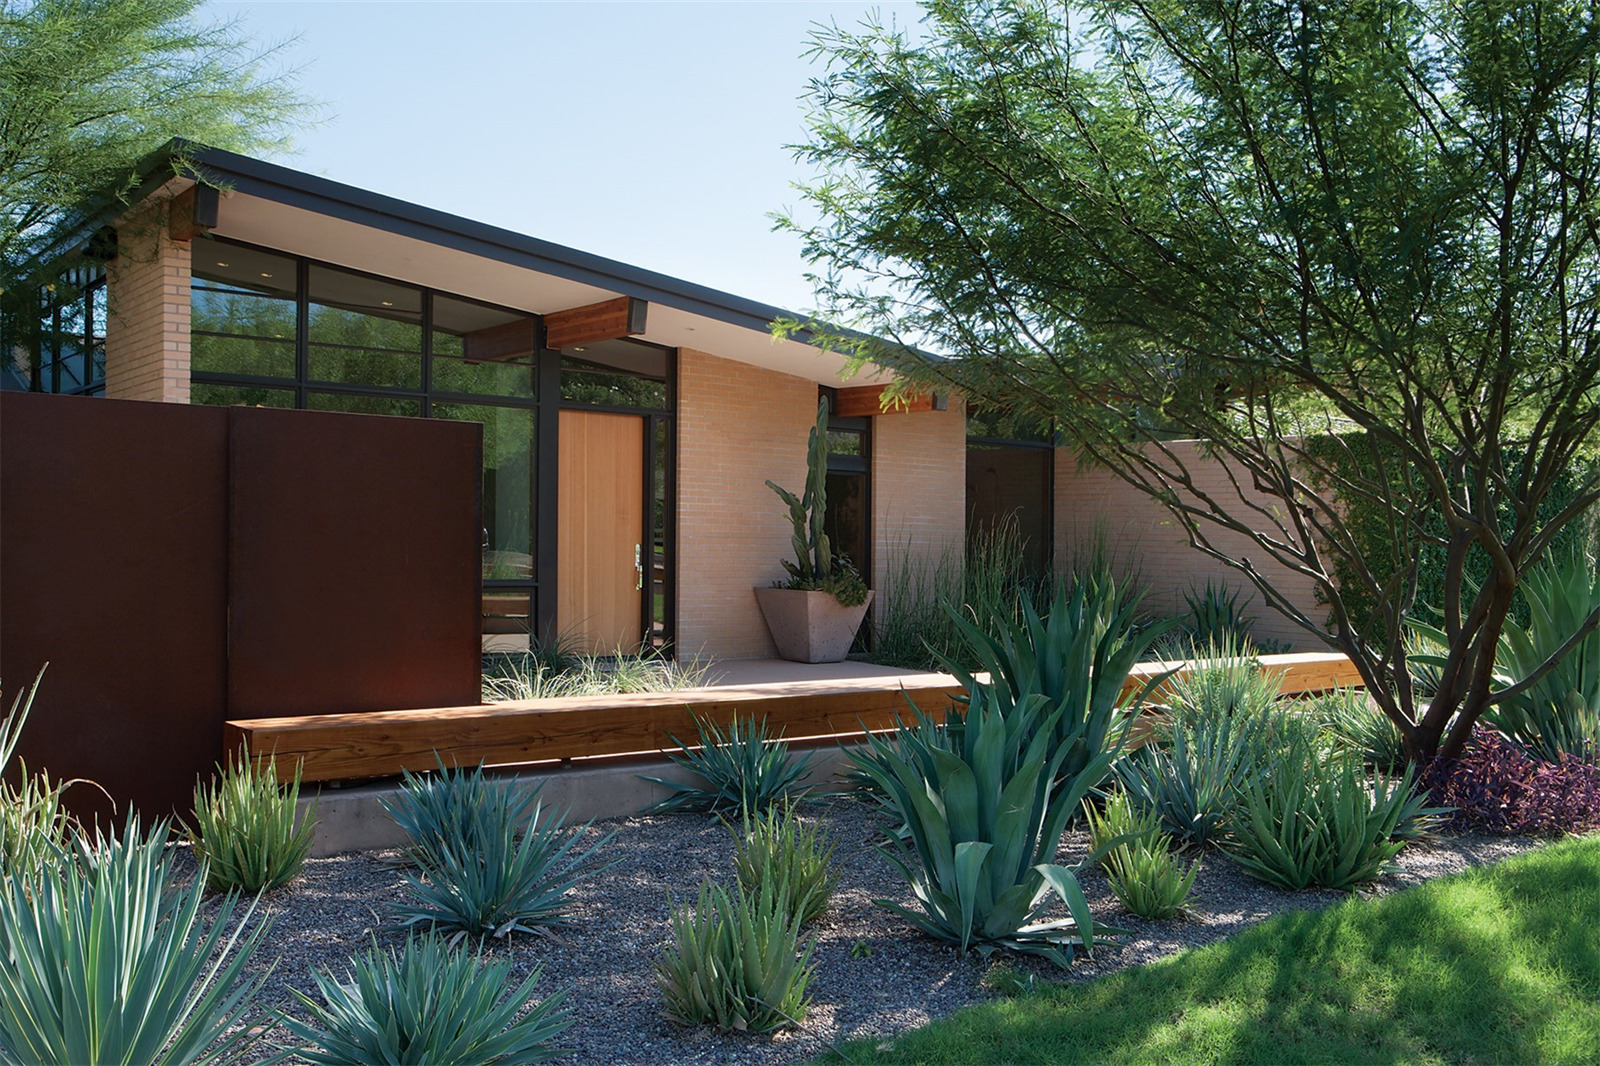 Desert midcentury modern with guesthouse asks 3 49m